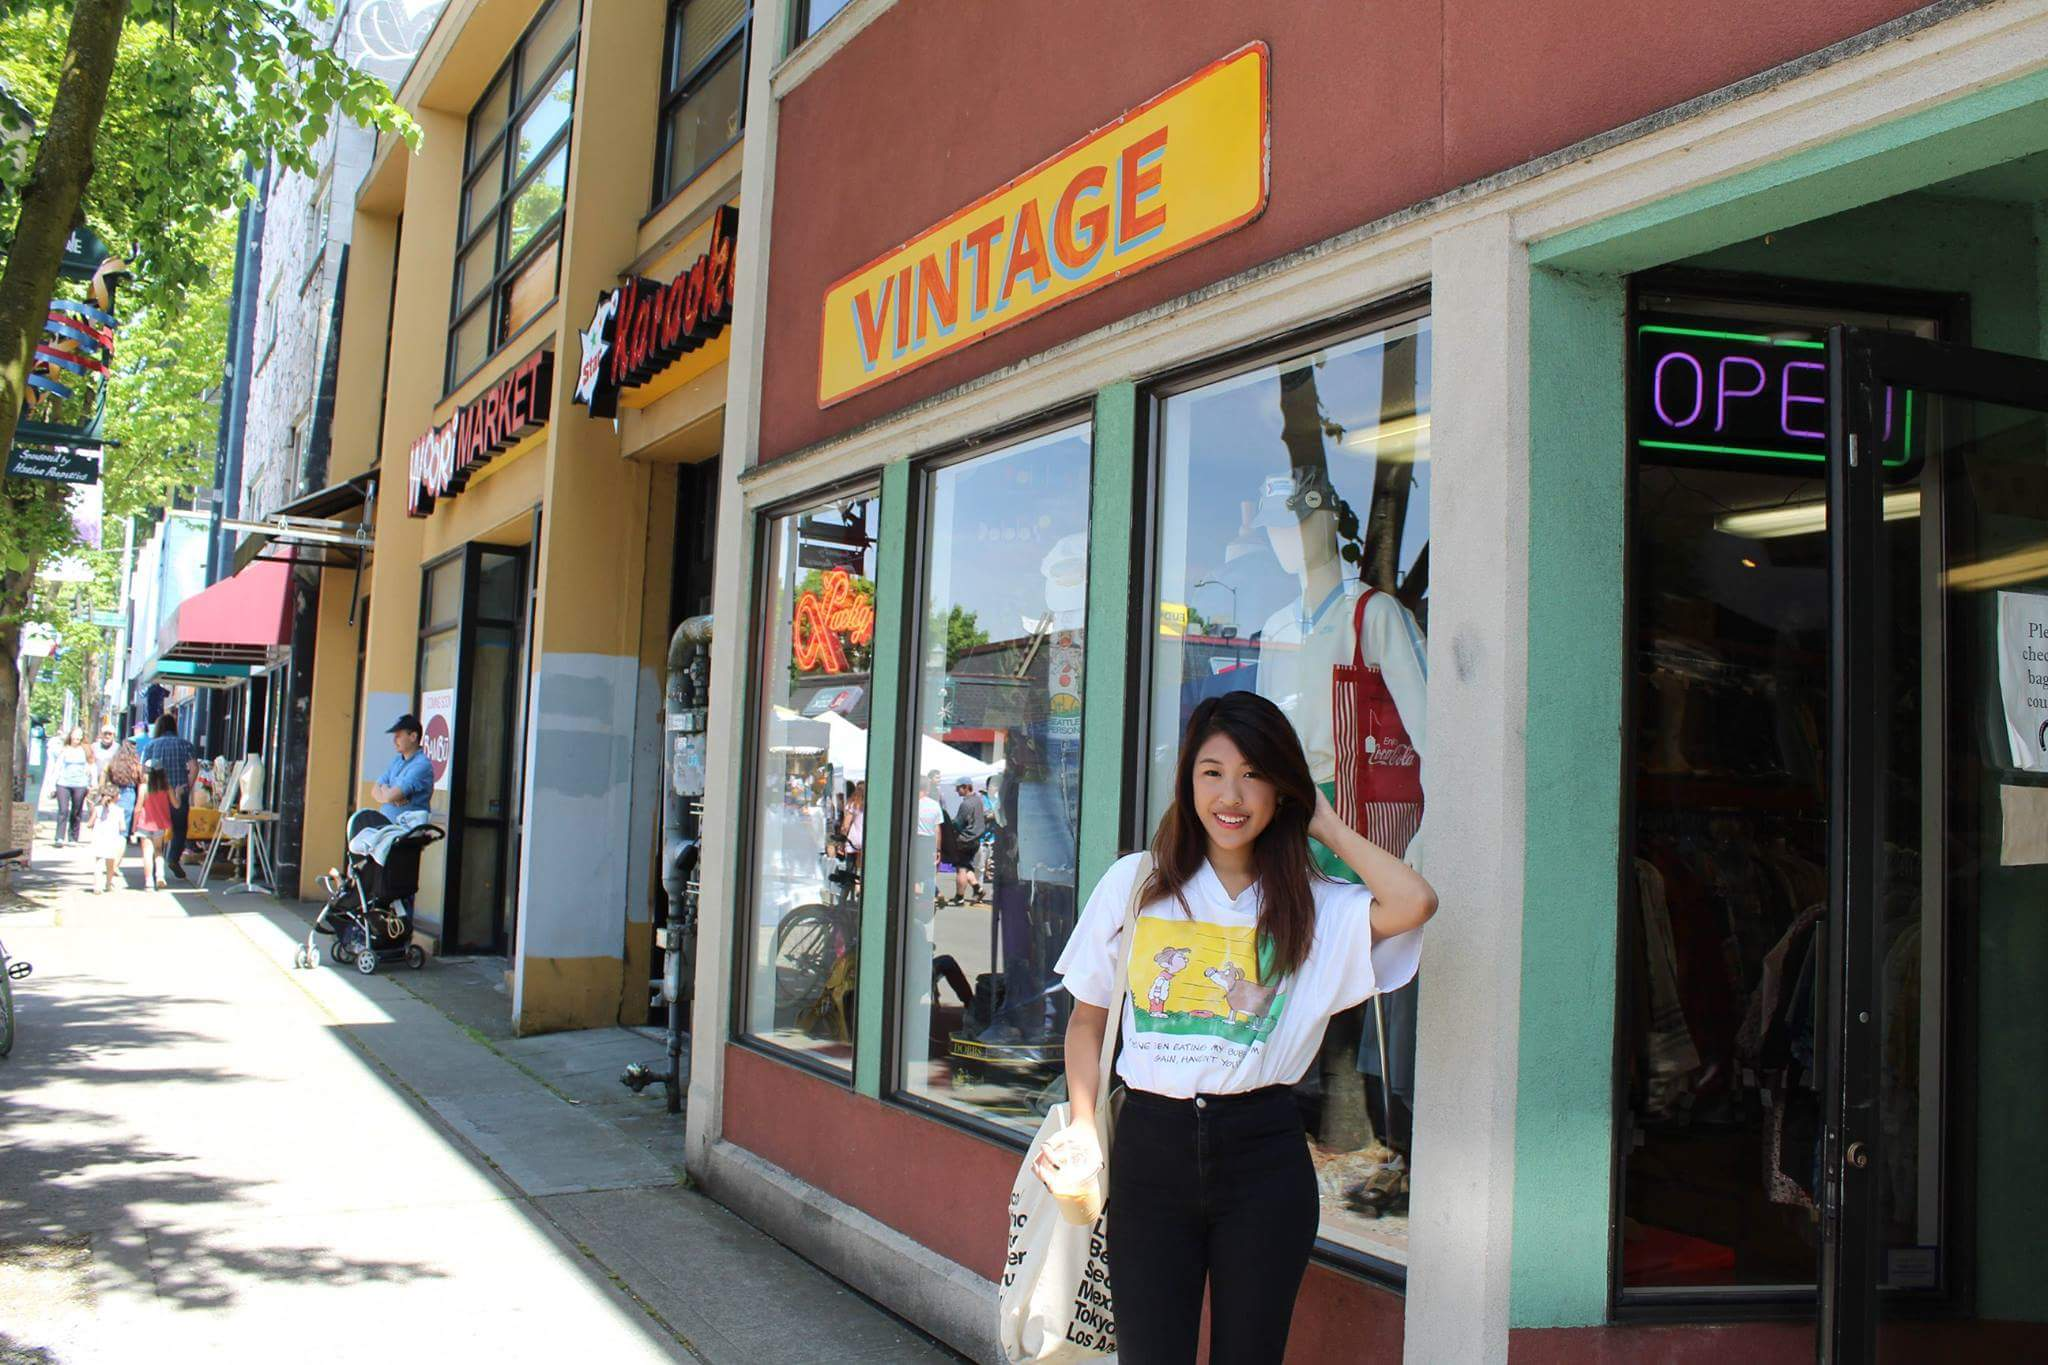 In front of a vintage store at the University village of University of Washington. We were sad that the cherry blossoms were no longer in season.